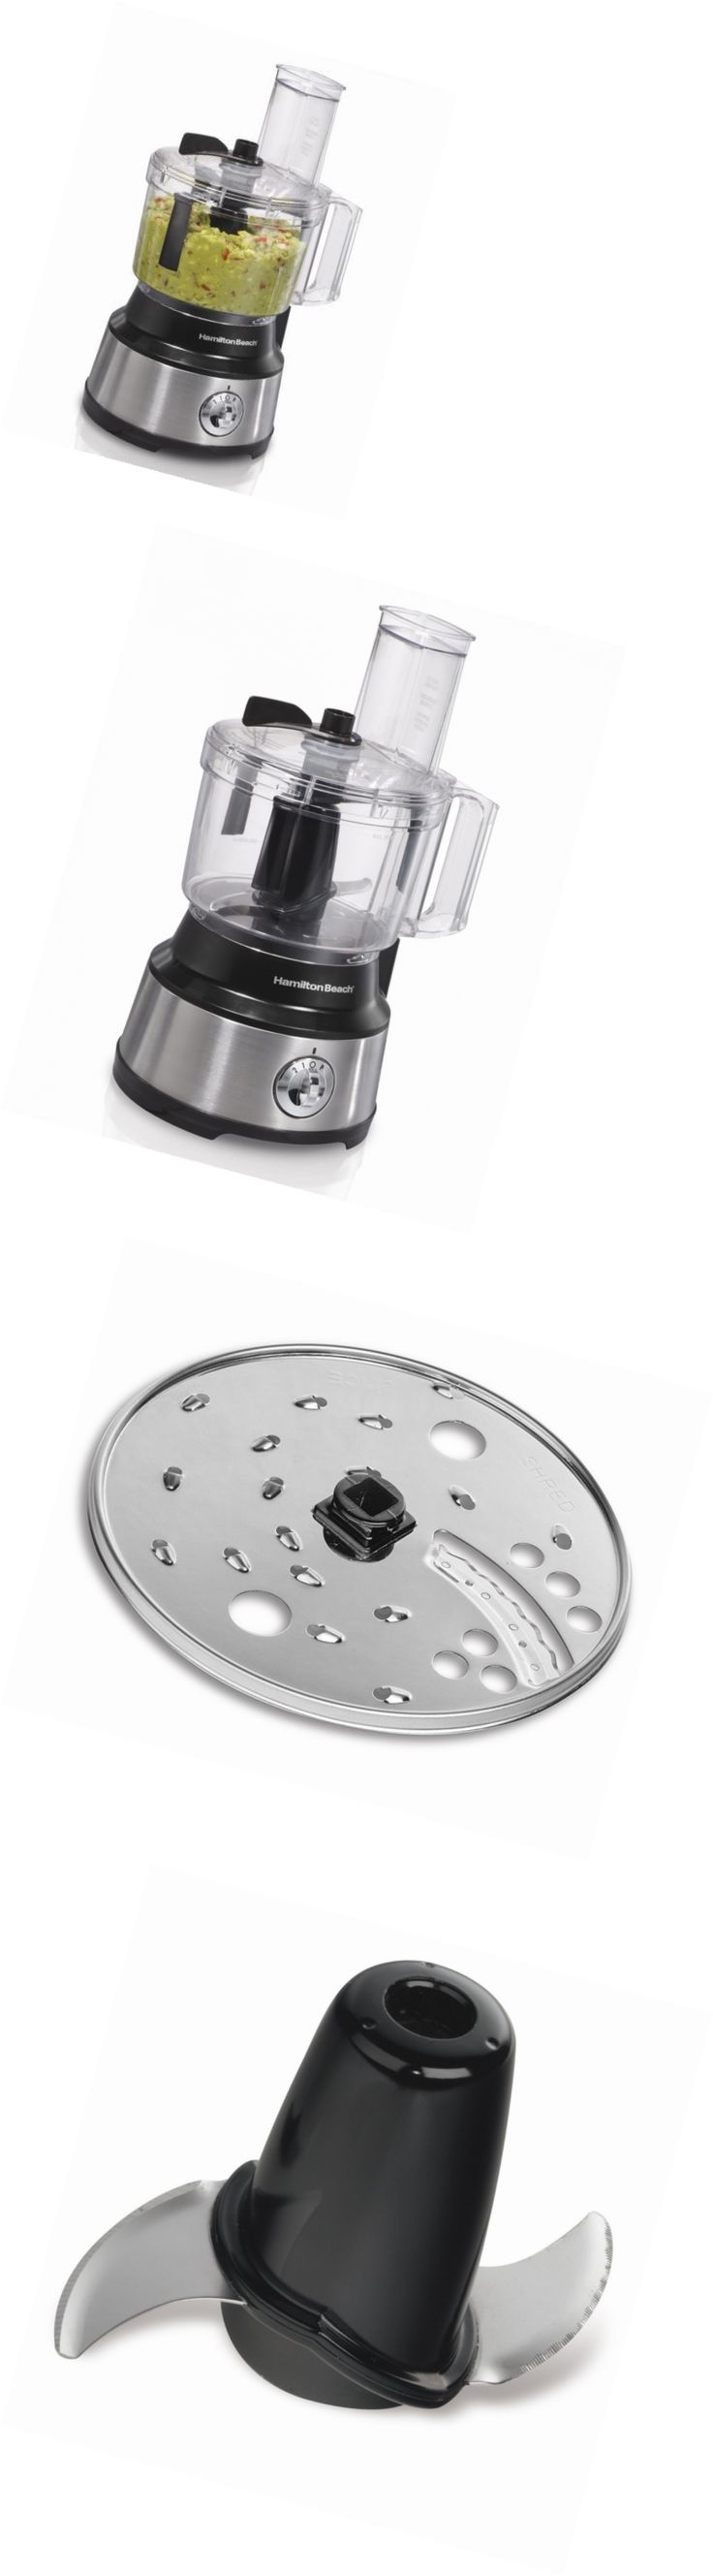 Food Processors 20673: Hamilton Beach 10-Cup Food Processor, With Bowl Scraper (70730) -> BUY IT NOW ONLY: $44.03 on eBay!